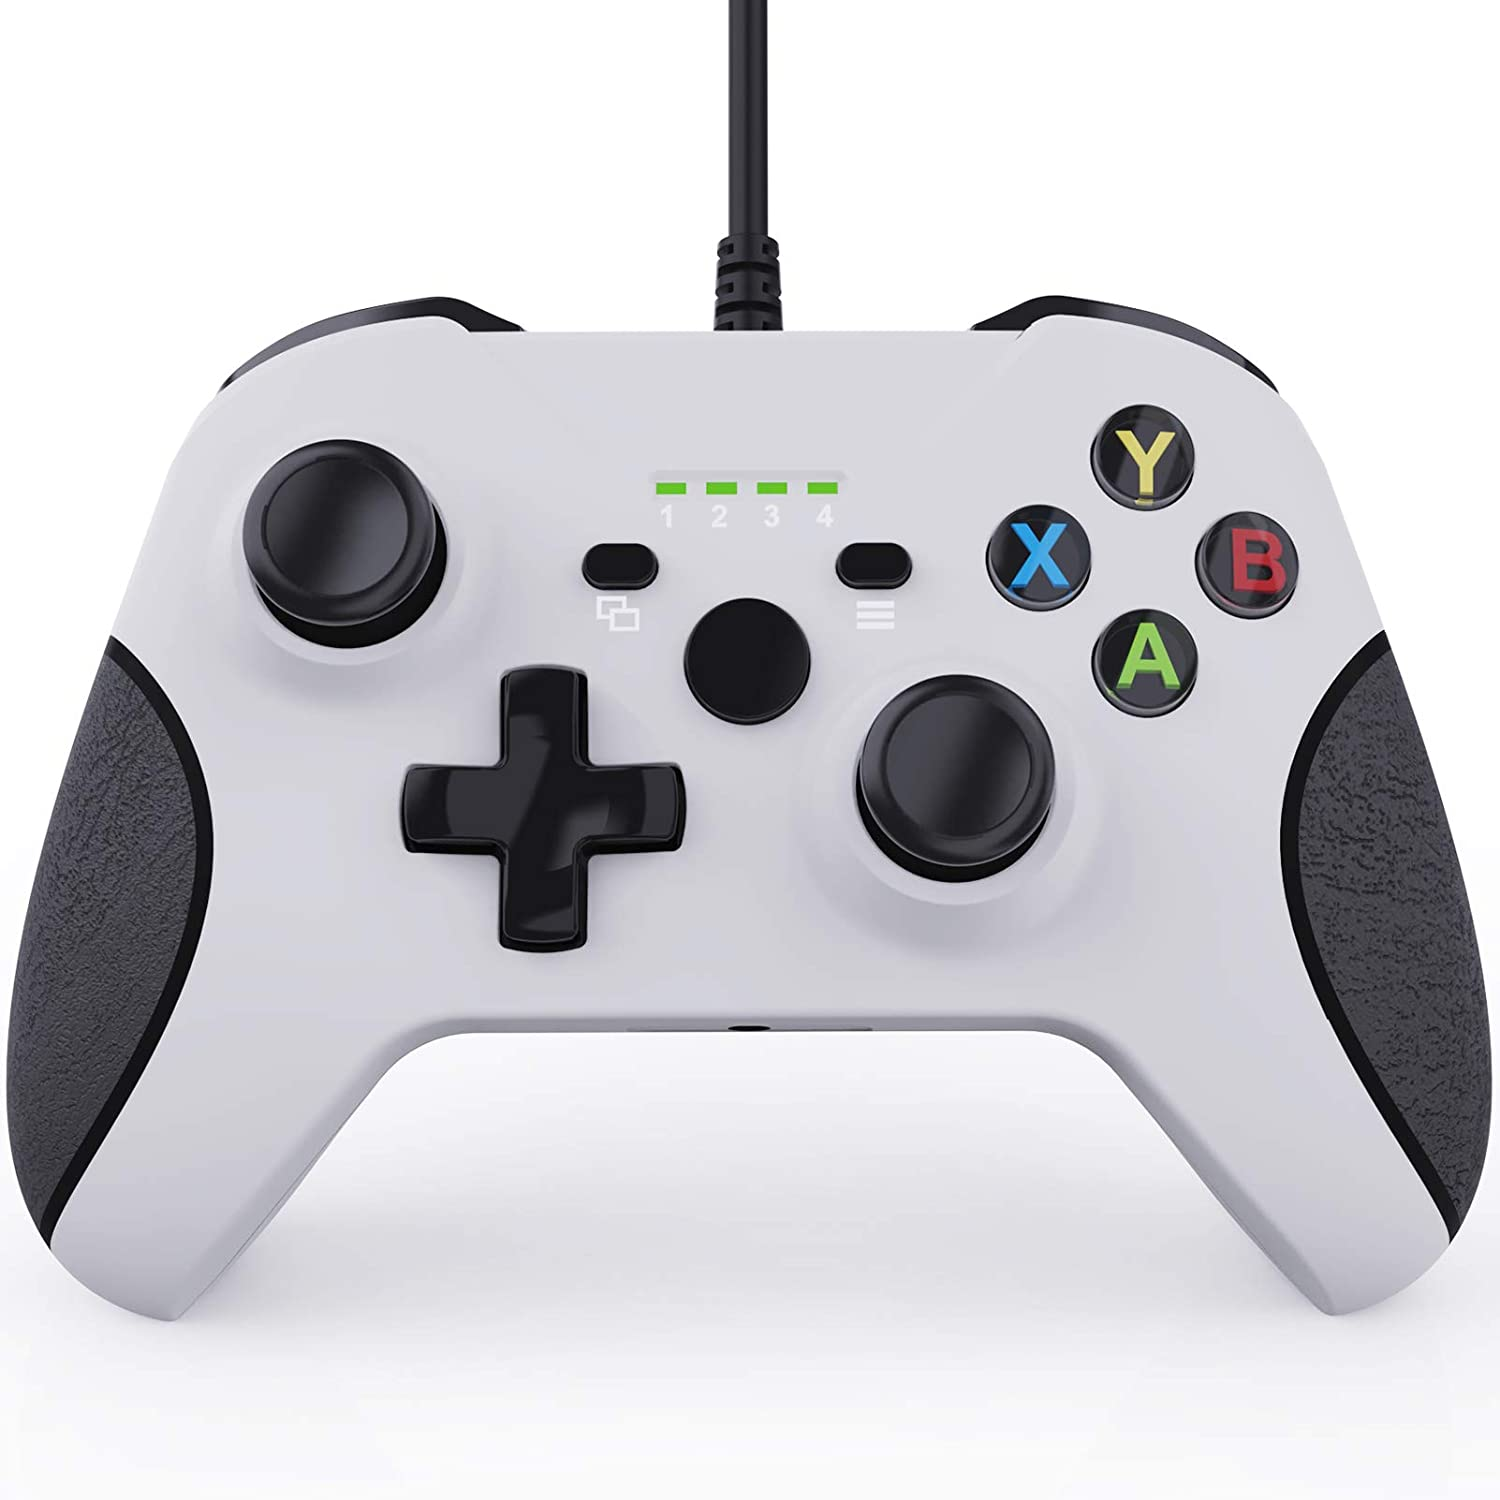 YCCSKY Wired Controller for Enhanced Max 51% OFF Dedication One Xbox